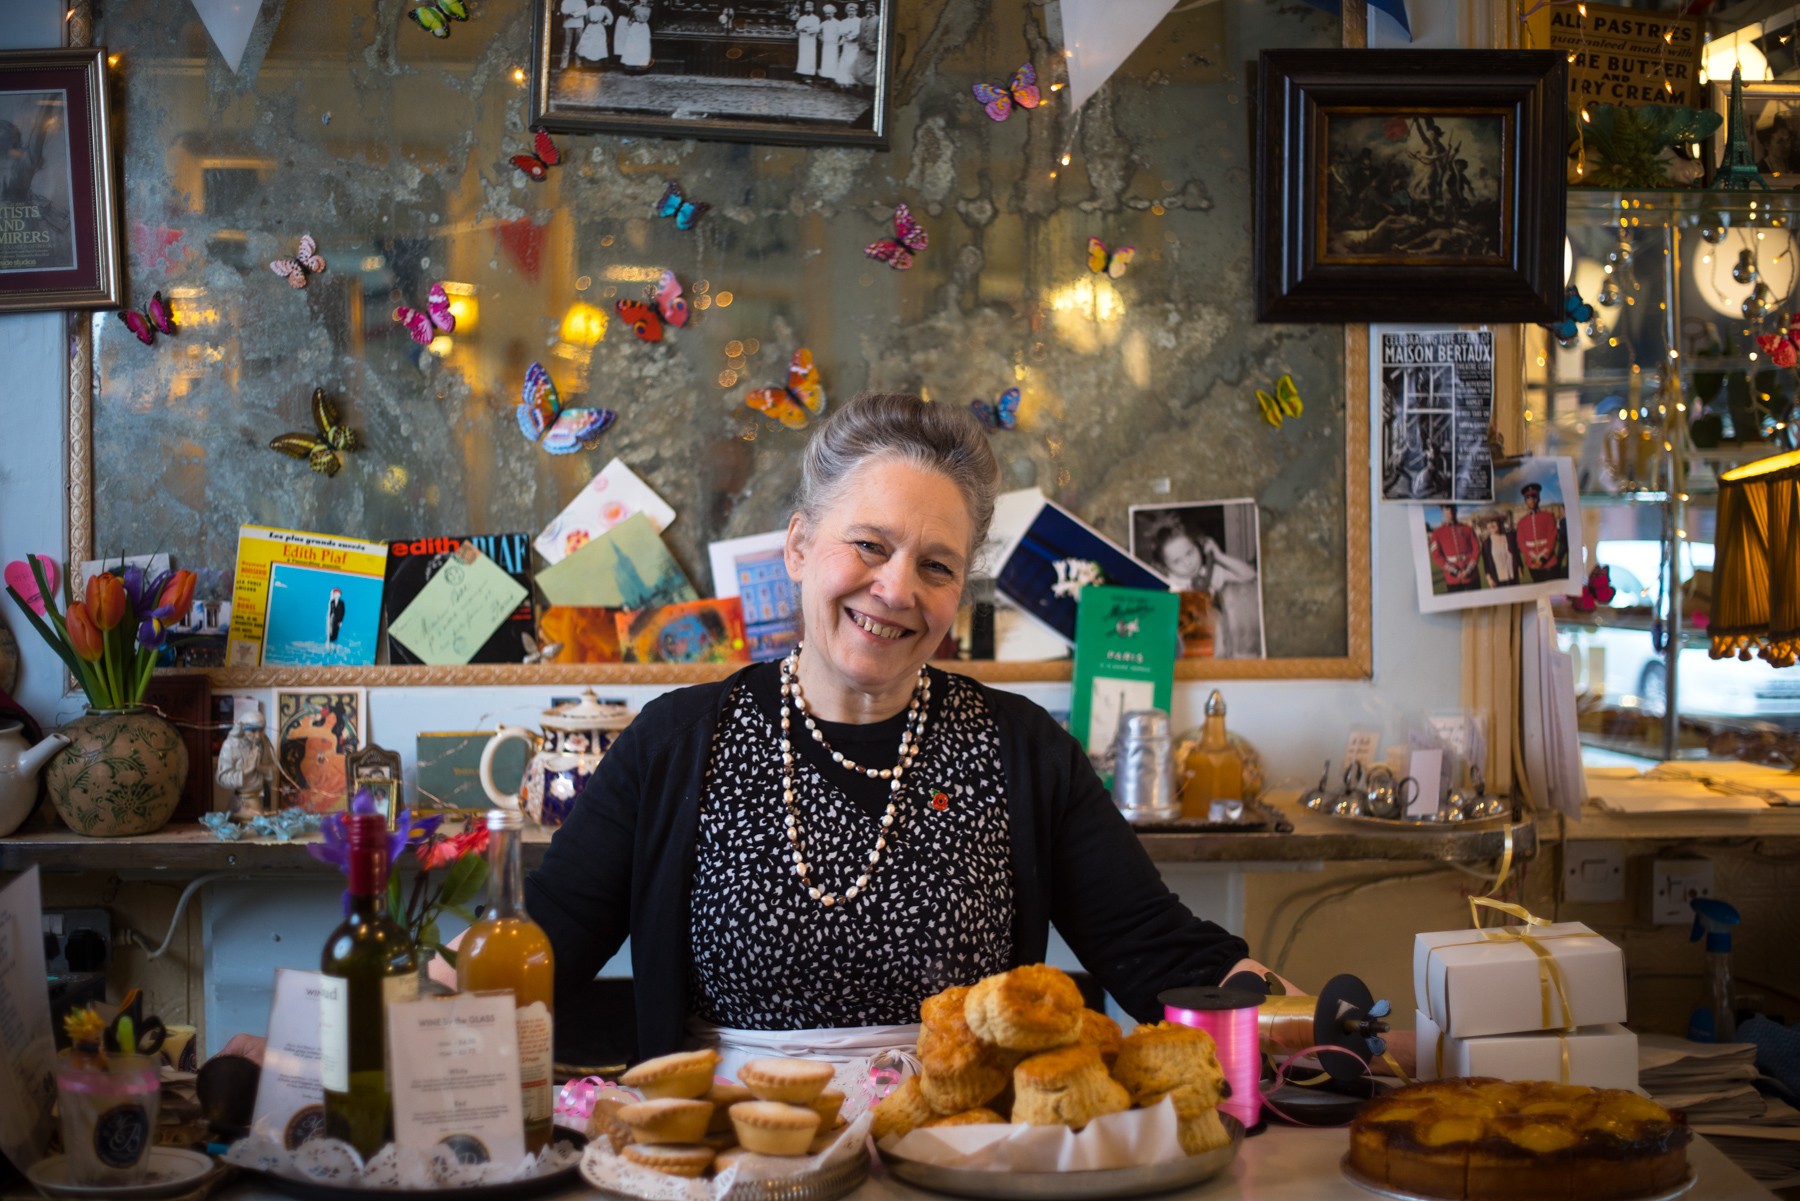 Michele started as a Saturday girl at Soho's Maison Bertaux in 1975 and has been there ever since.